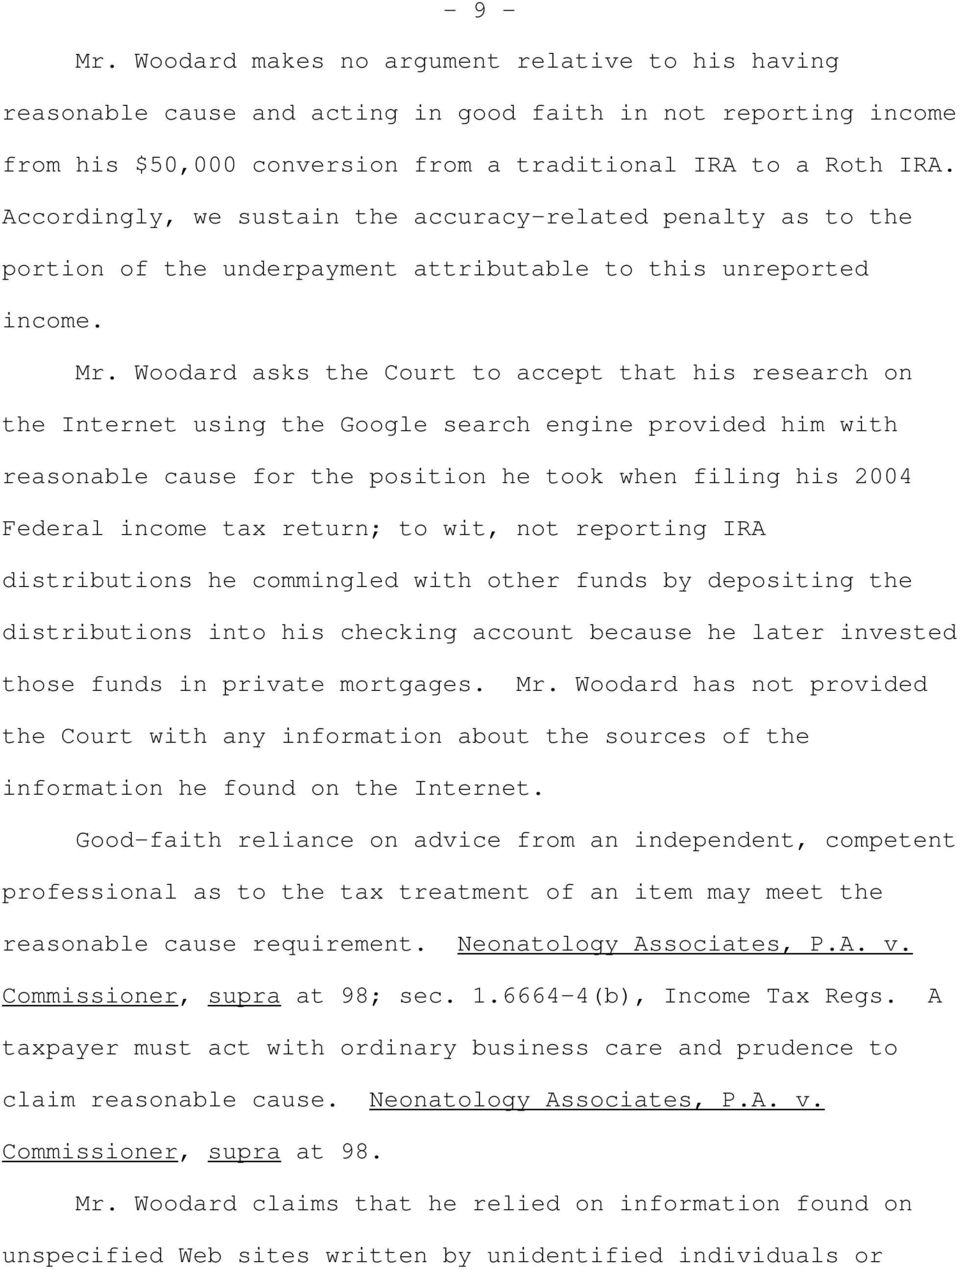 Woodard asks the Court to accept that his research on the Internet using the Google search engine provided him with reasonable cause for the position he took when filing his 2004 Federal income tax